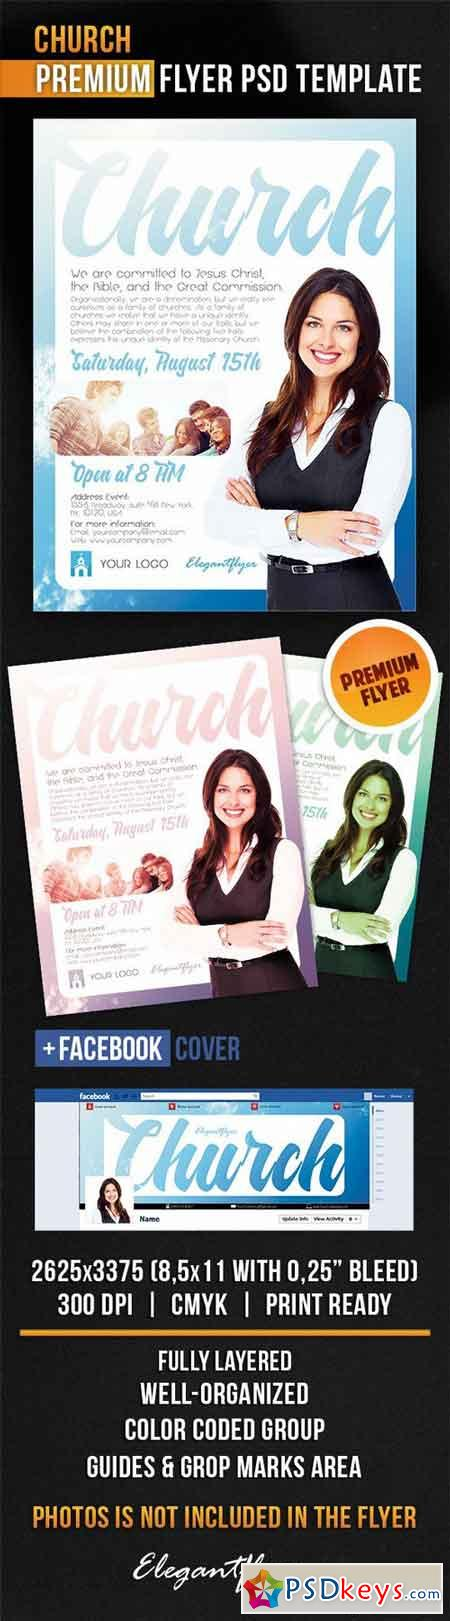 free church flyer templates photoshop - articles for page 7 free download photoshop